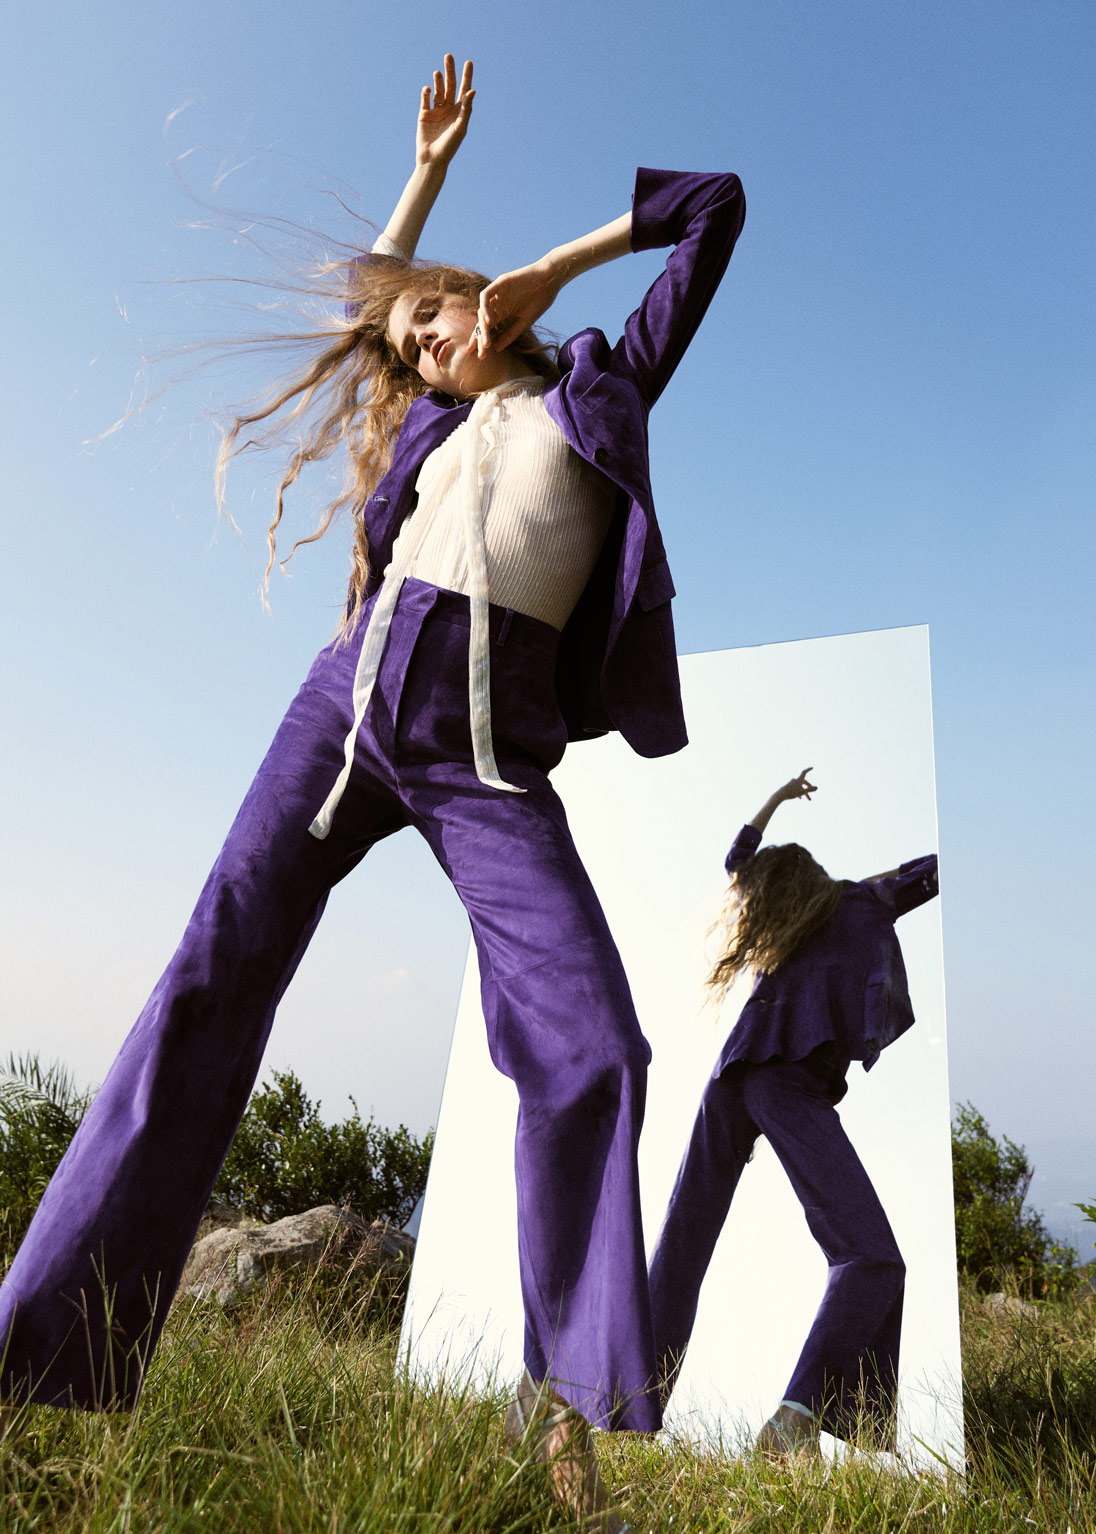 A model poses in front of a mirror on a grassy hill wearing a purple Salvatore Ferragamo suit